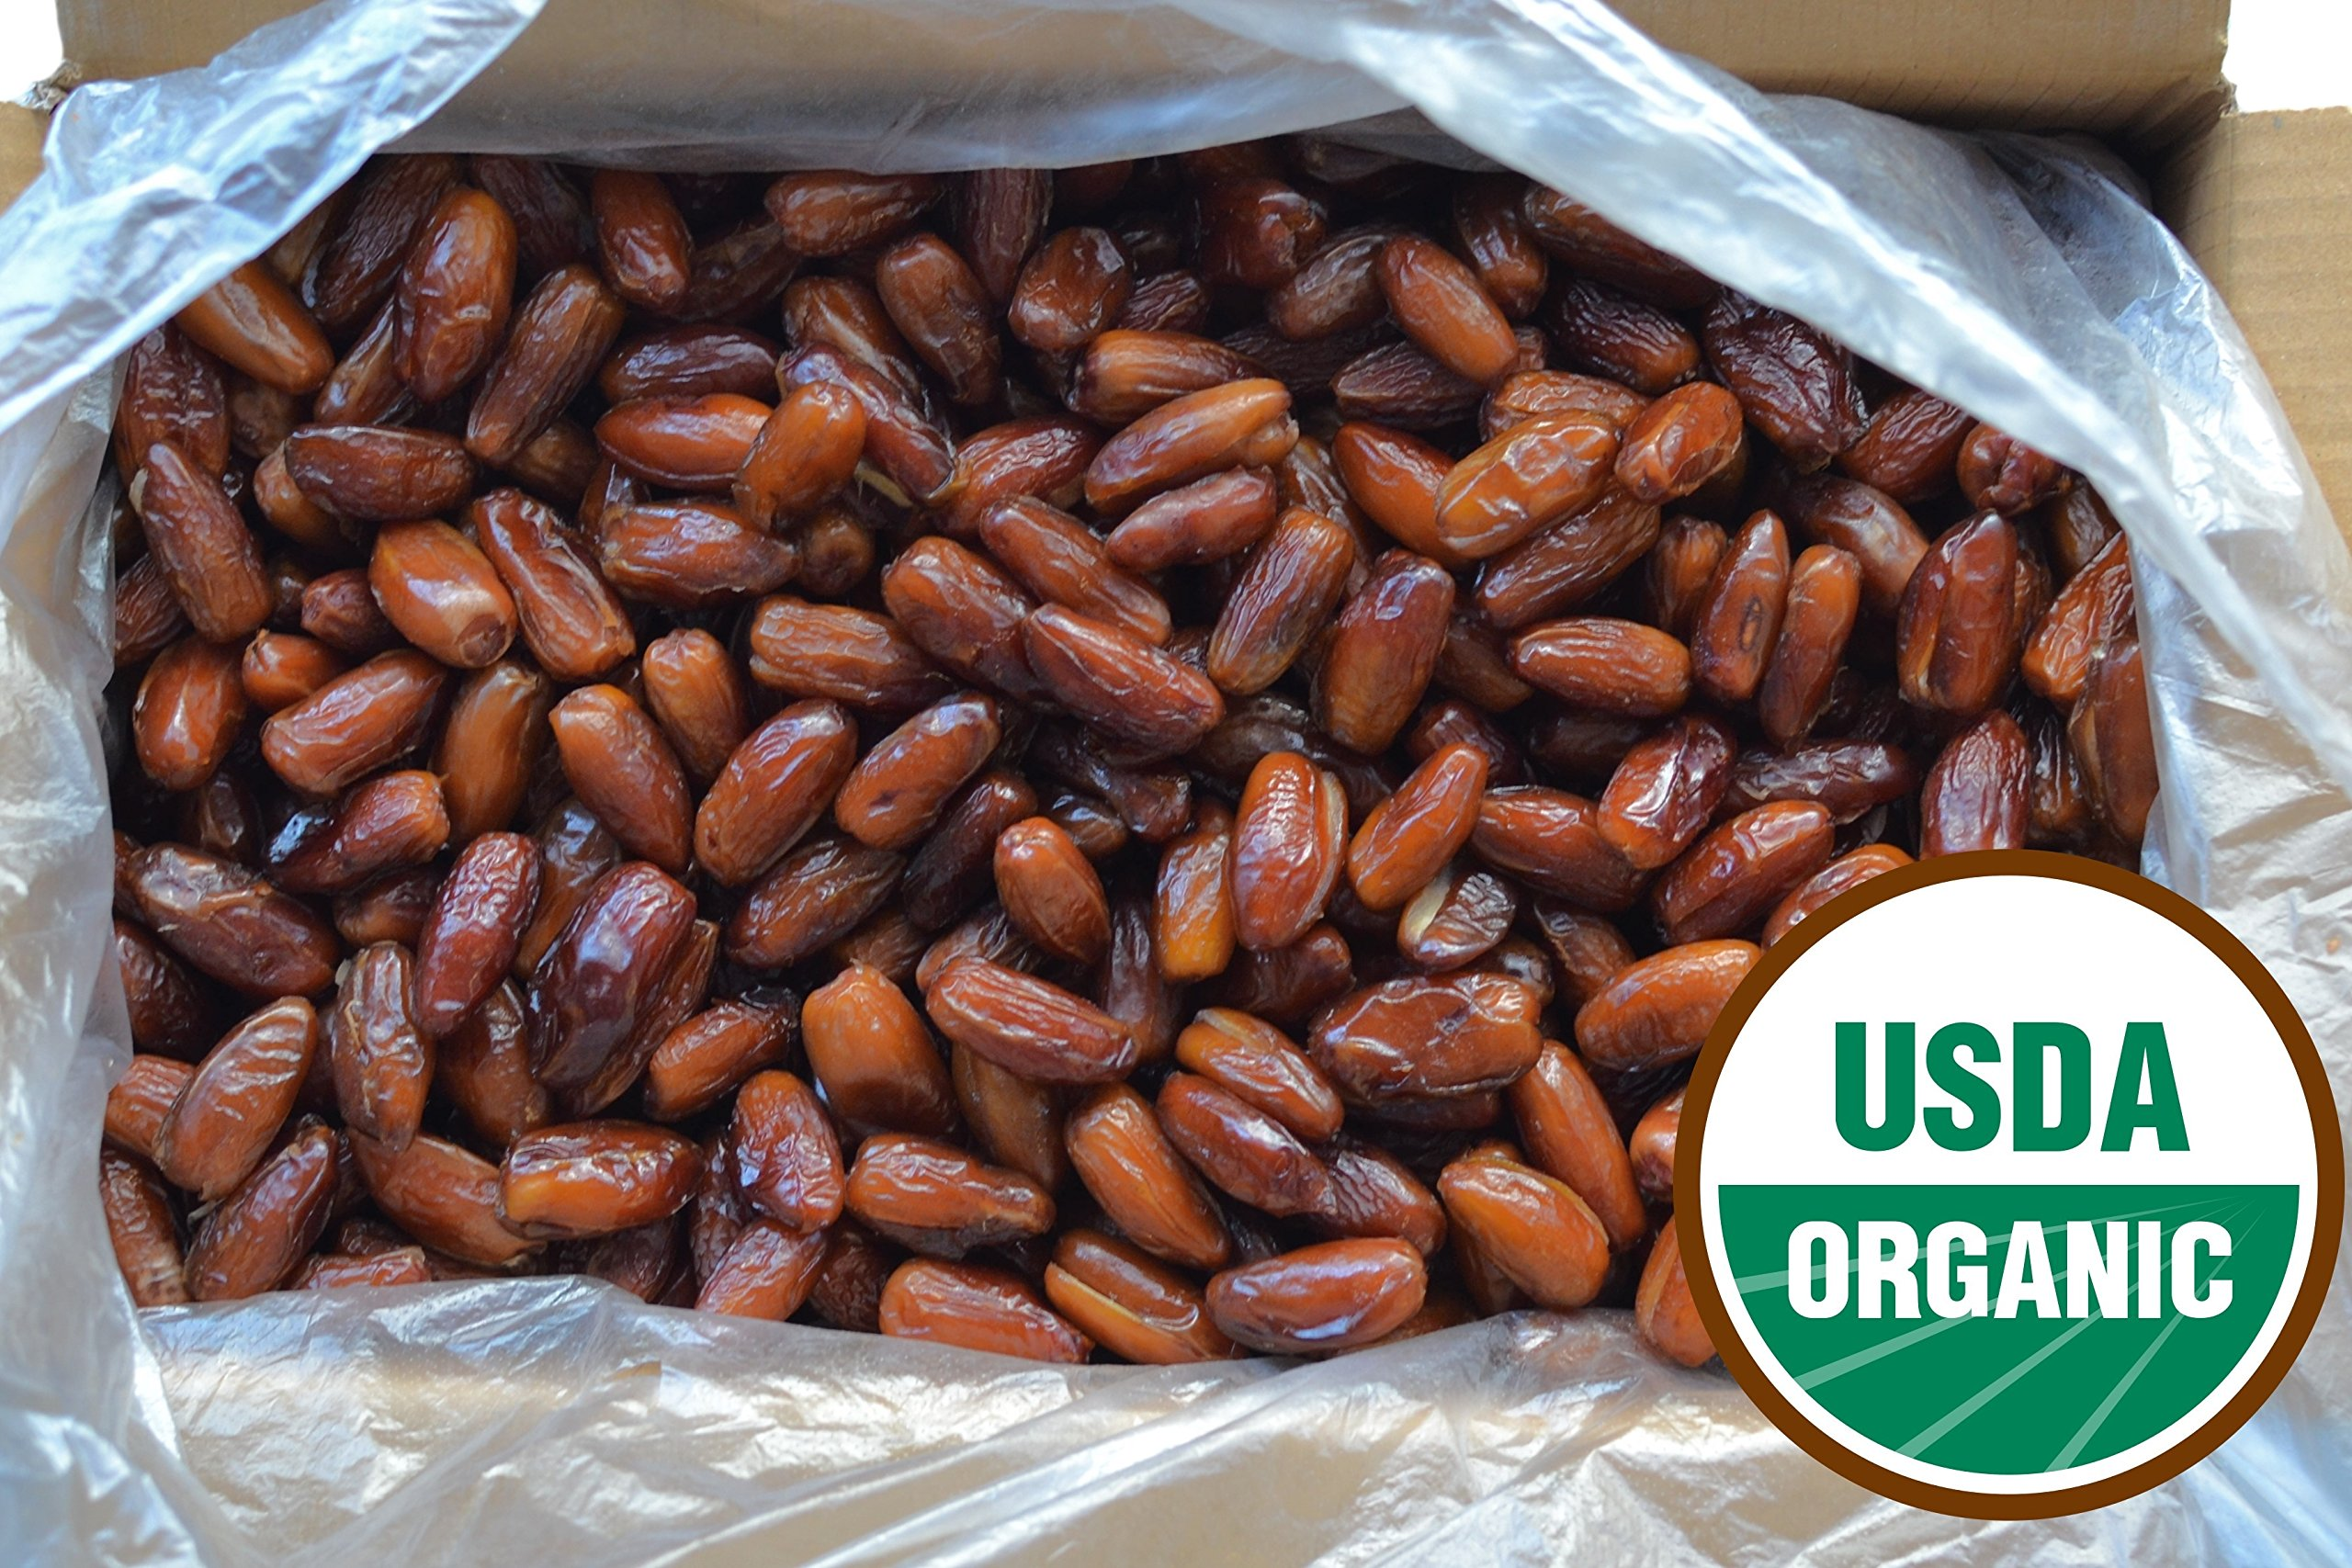 Organic Dates, Pitted, Deglet Noor (19.8 lbs)